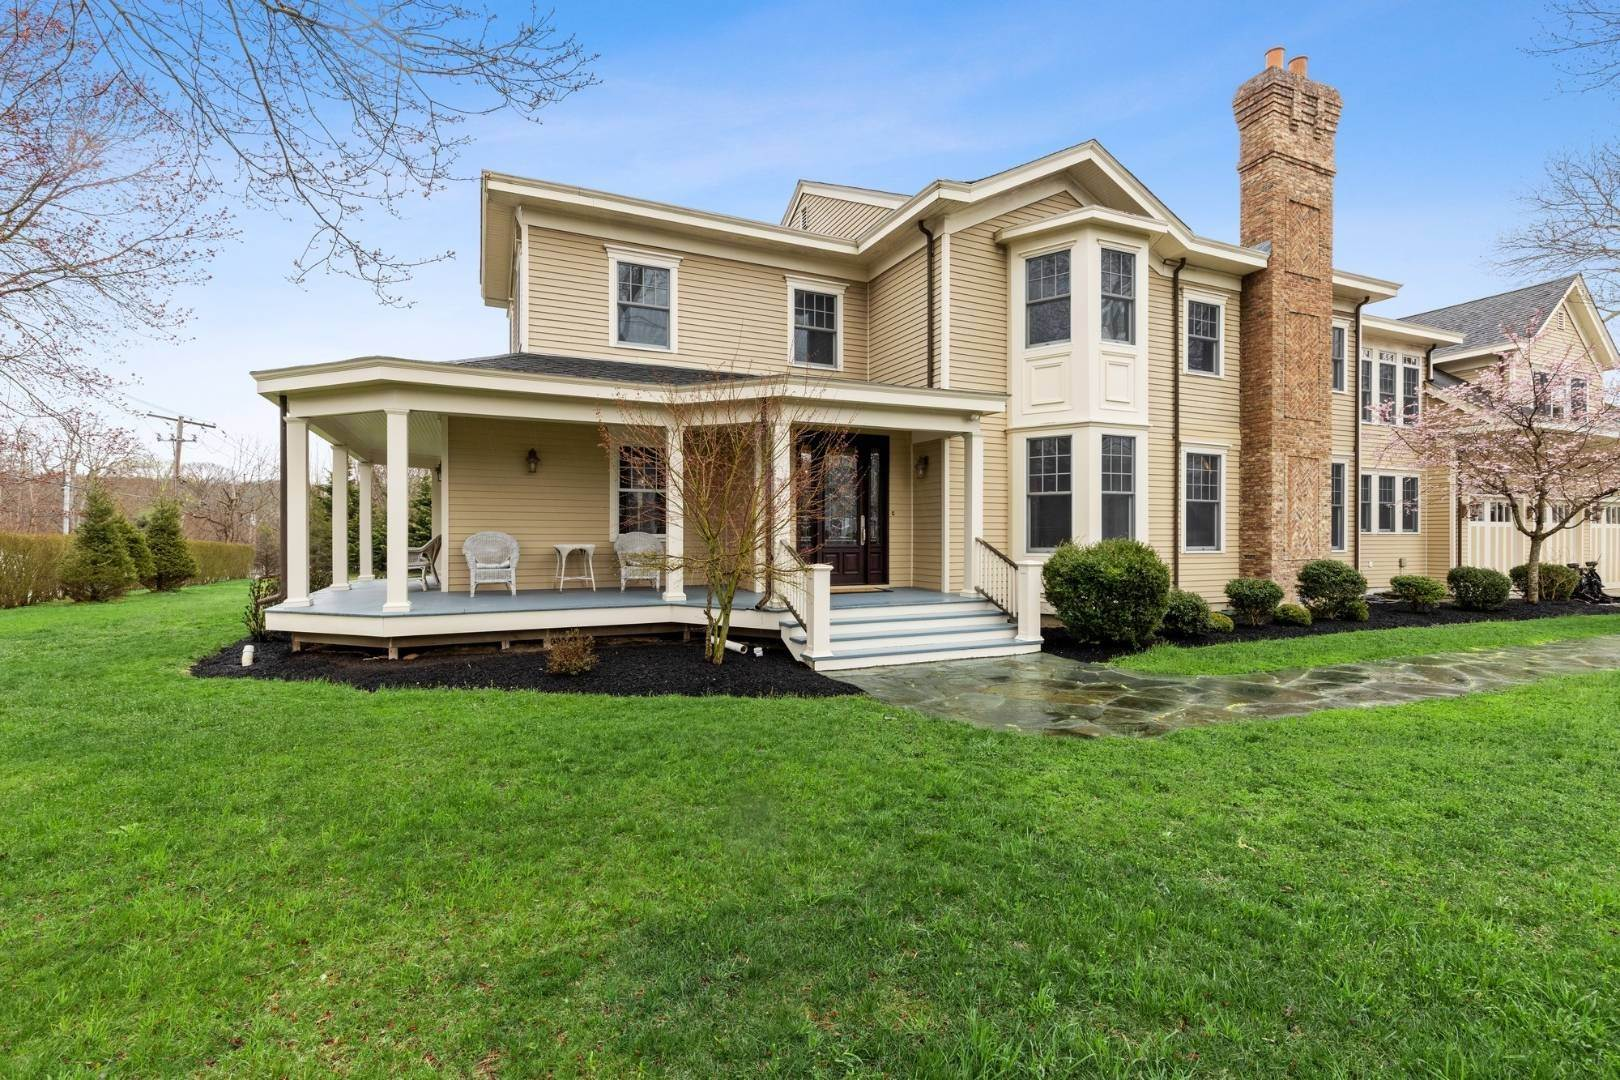 Single Family Home 为 销售 在 A Divine Victorian For The Modern Family - 1875 To 2021 52 Brushy Neck Ln, Westhampton, NY 11977